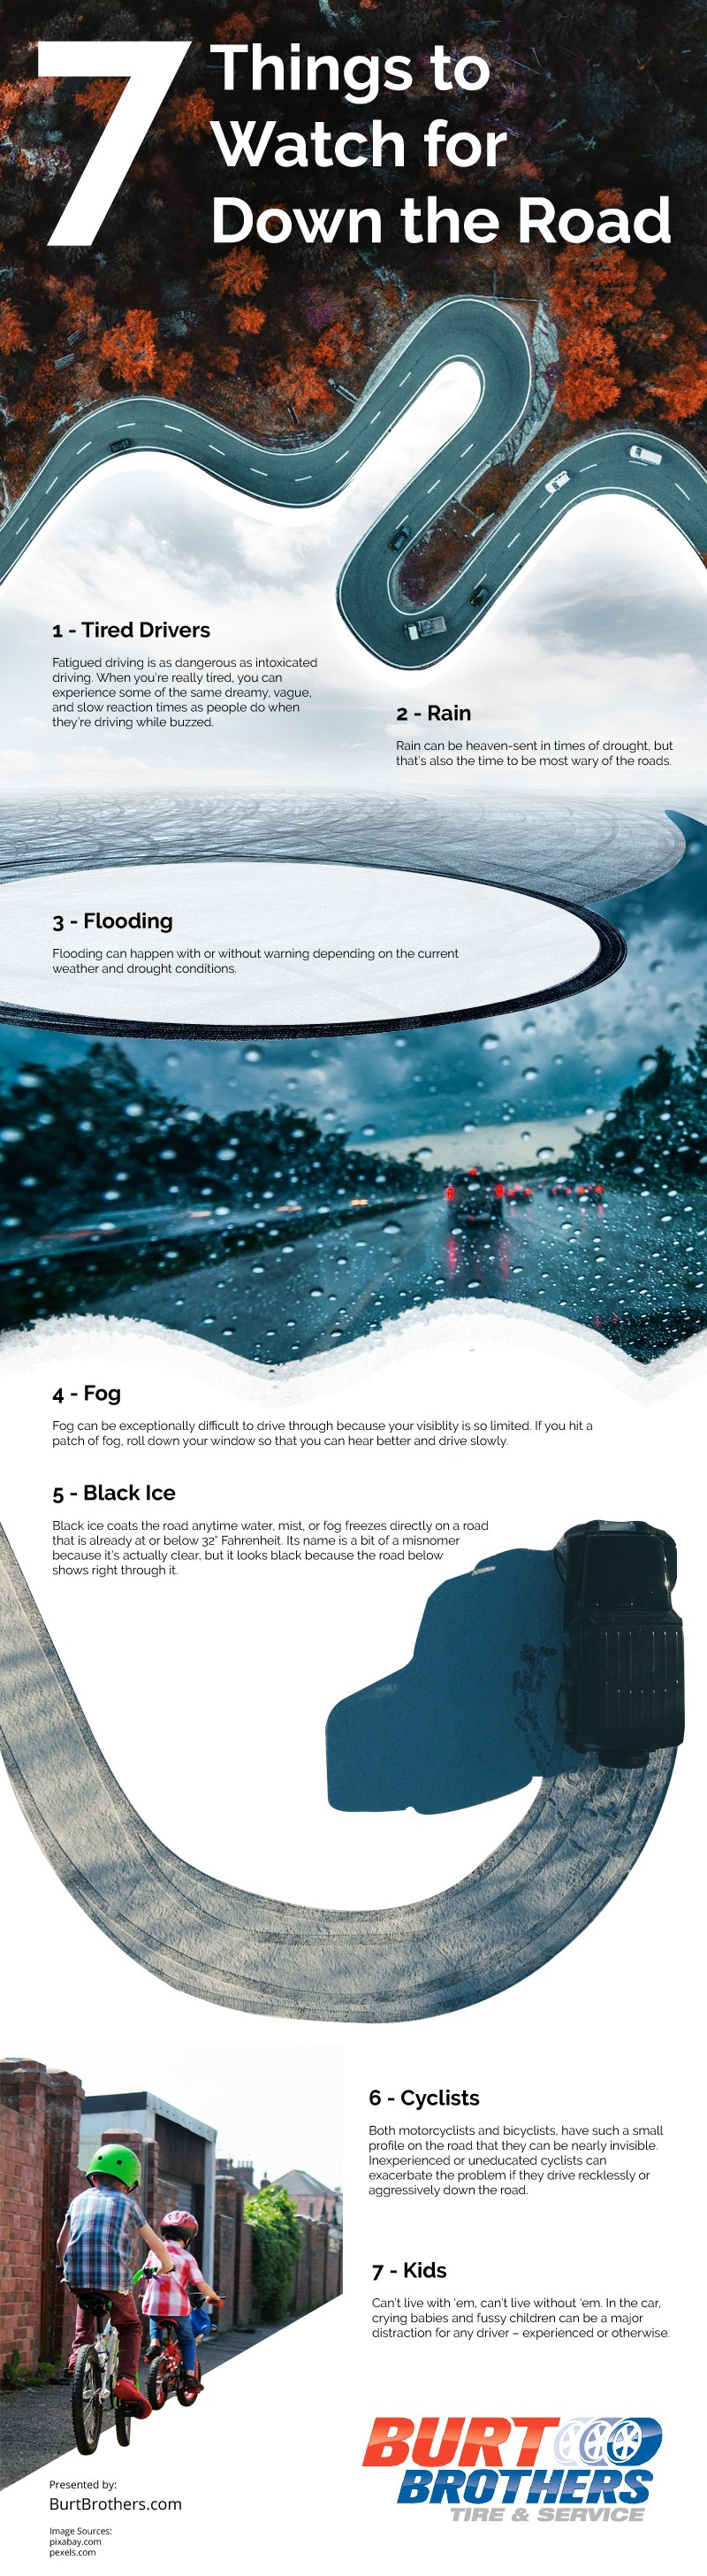 7 Things to Watch for Down the Road [infographic]